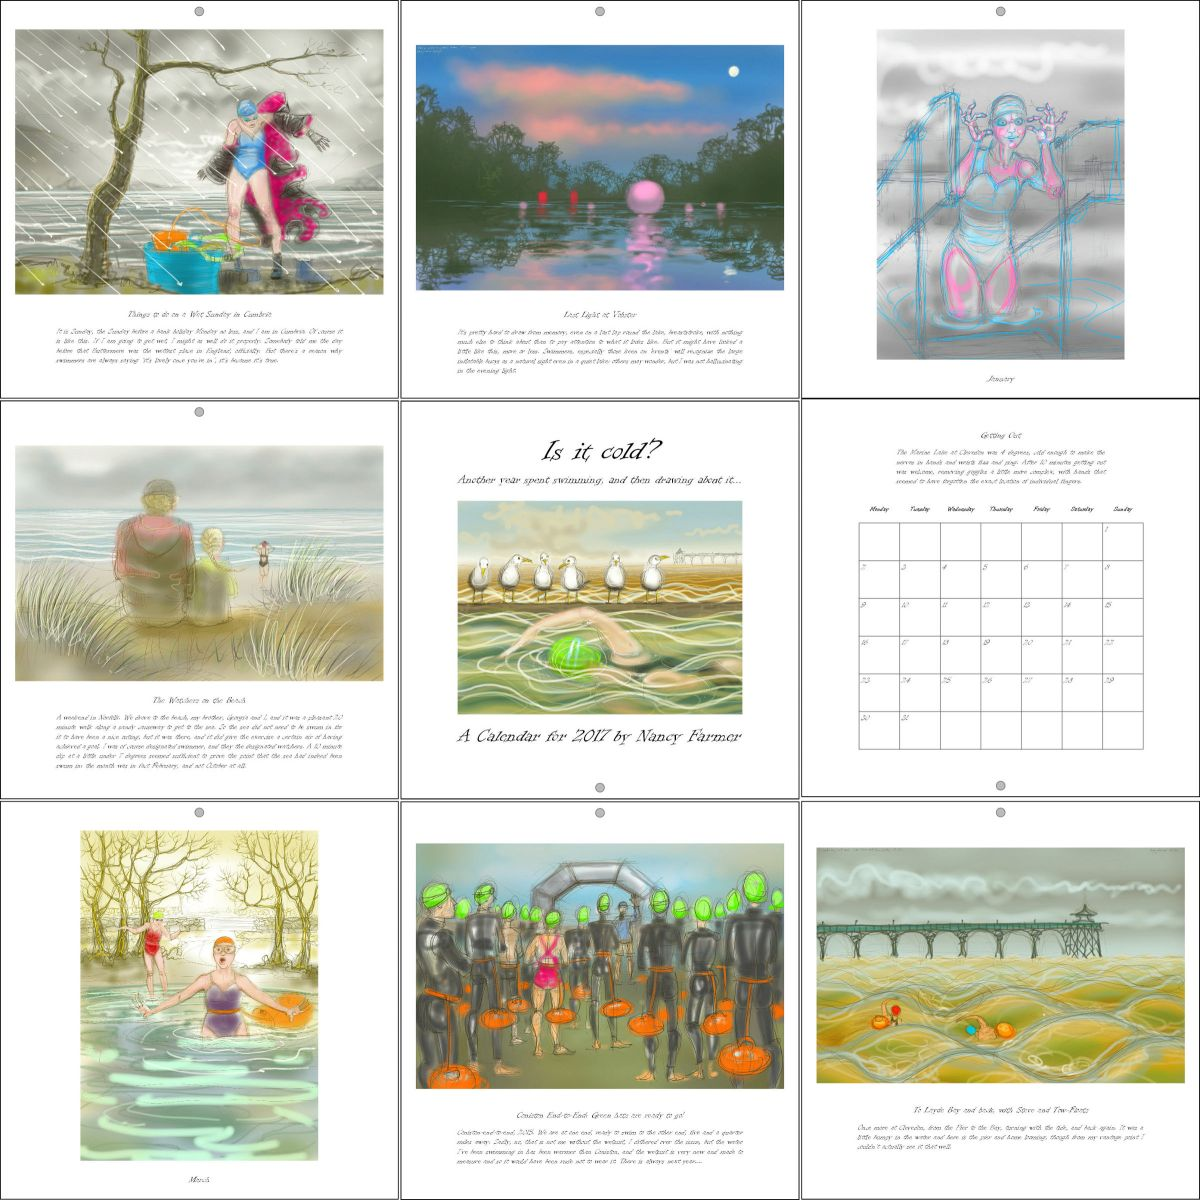 Pages from the Swimming Calendar